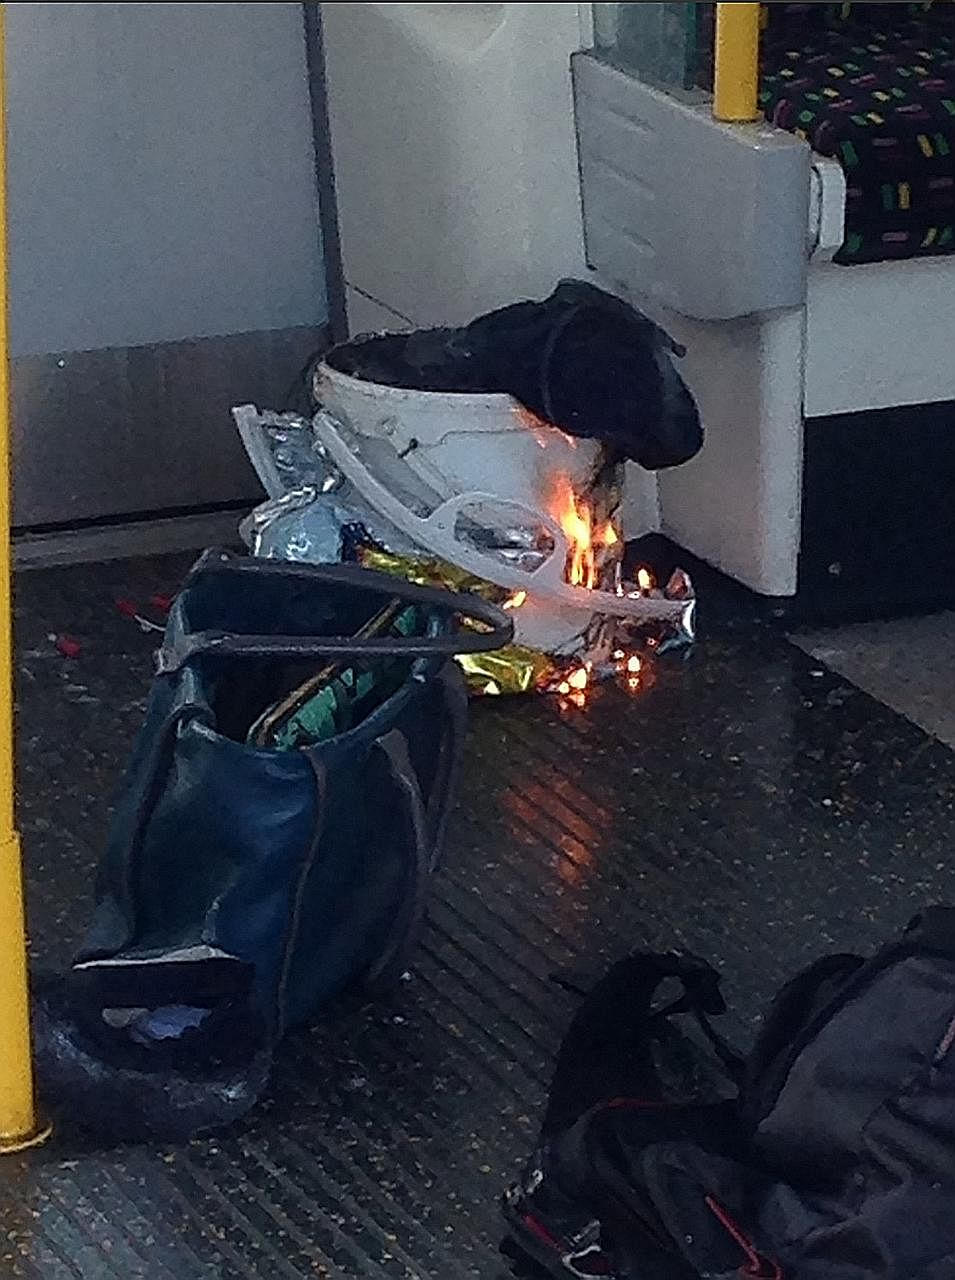 A photo posted by a Twitter user showing a white bucket burning inside the train carriage.